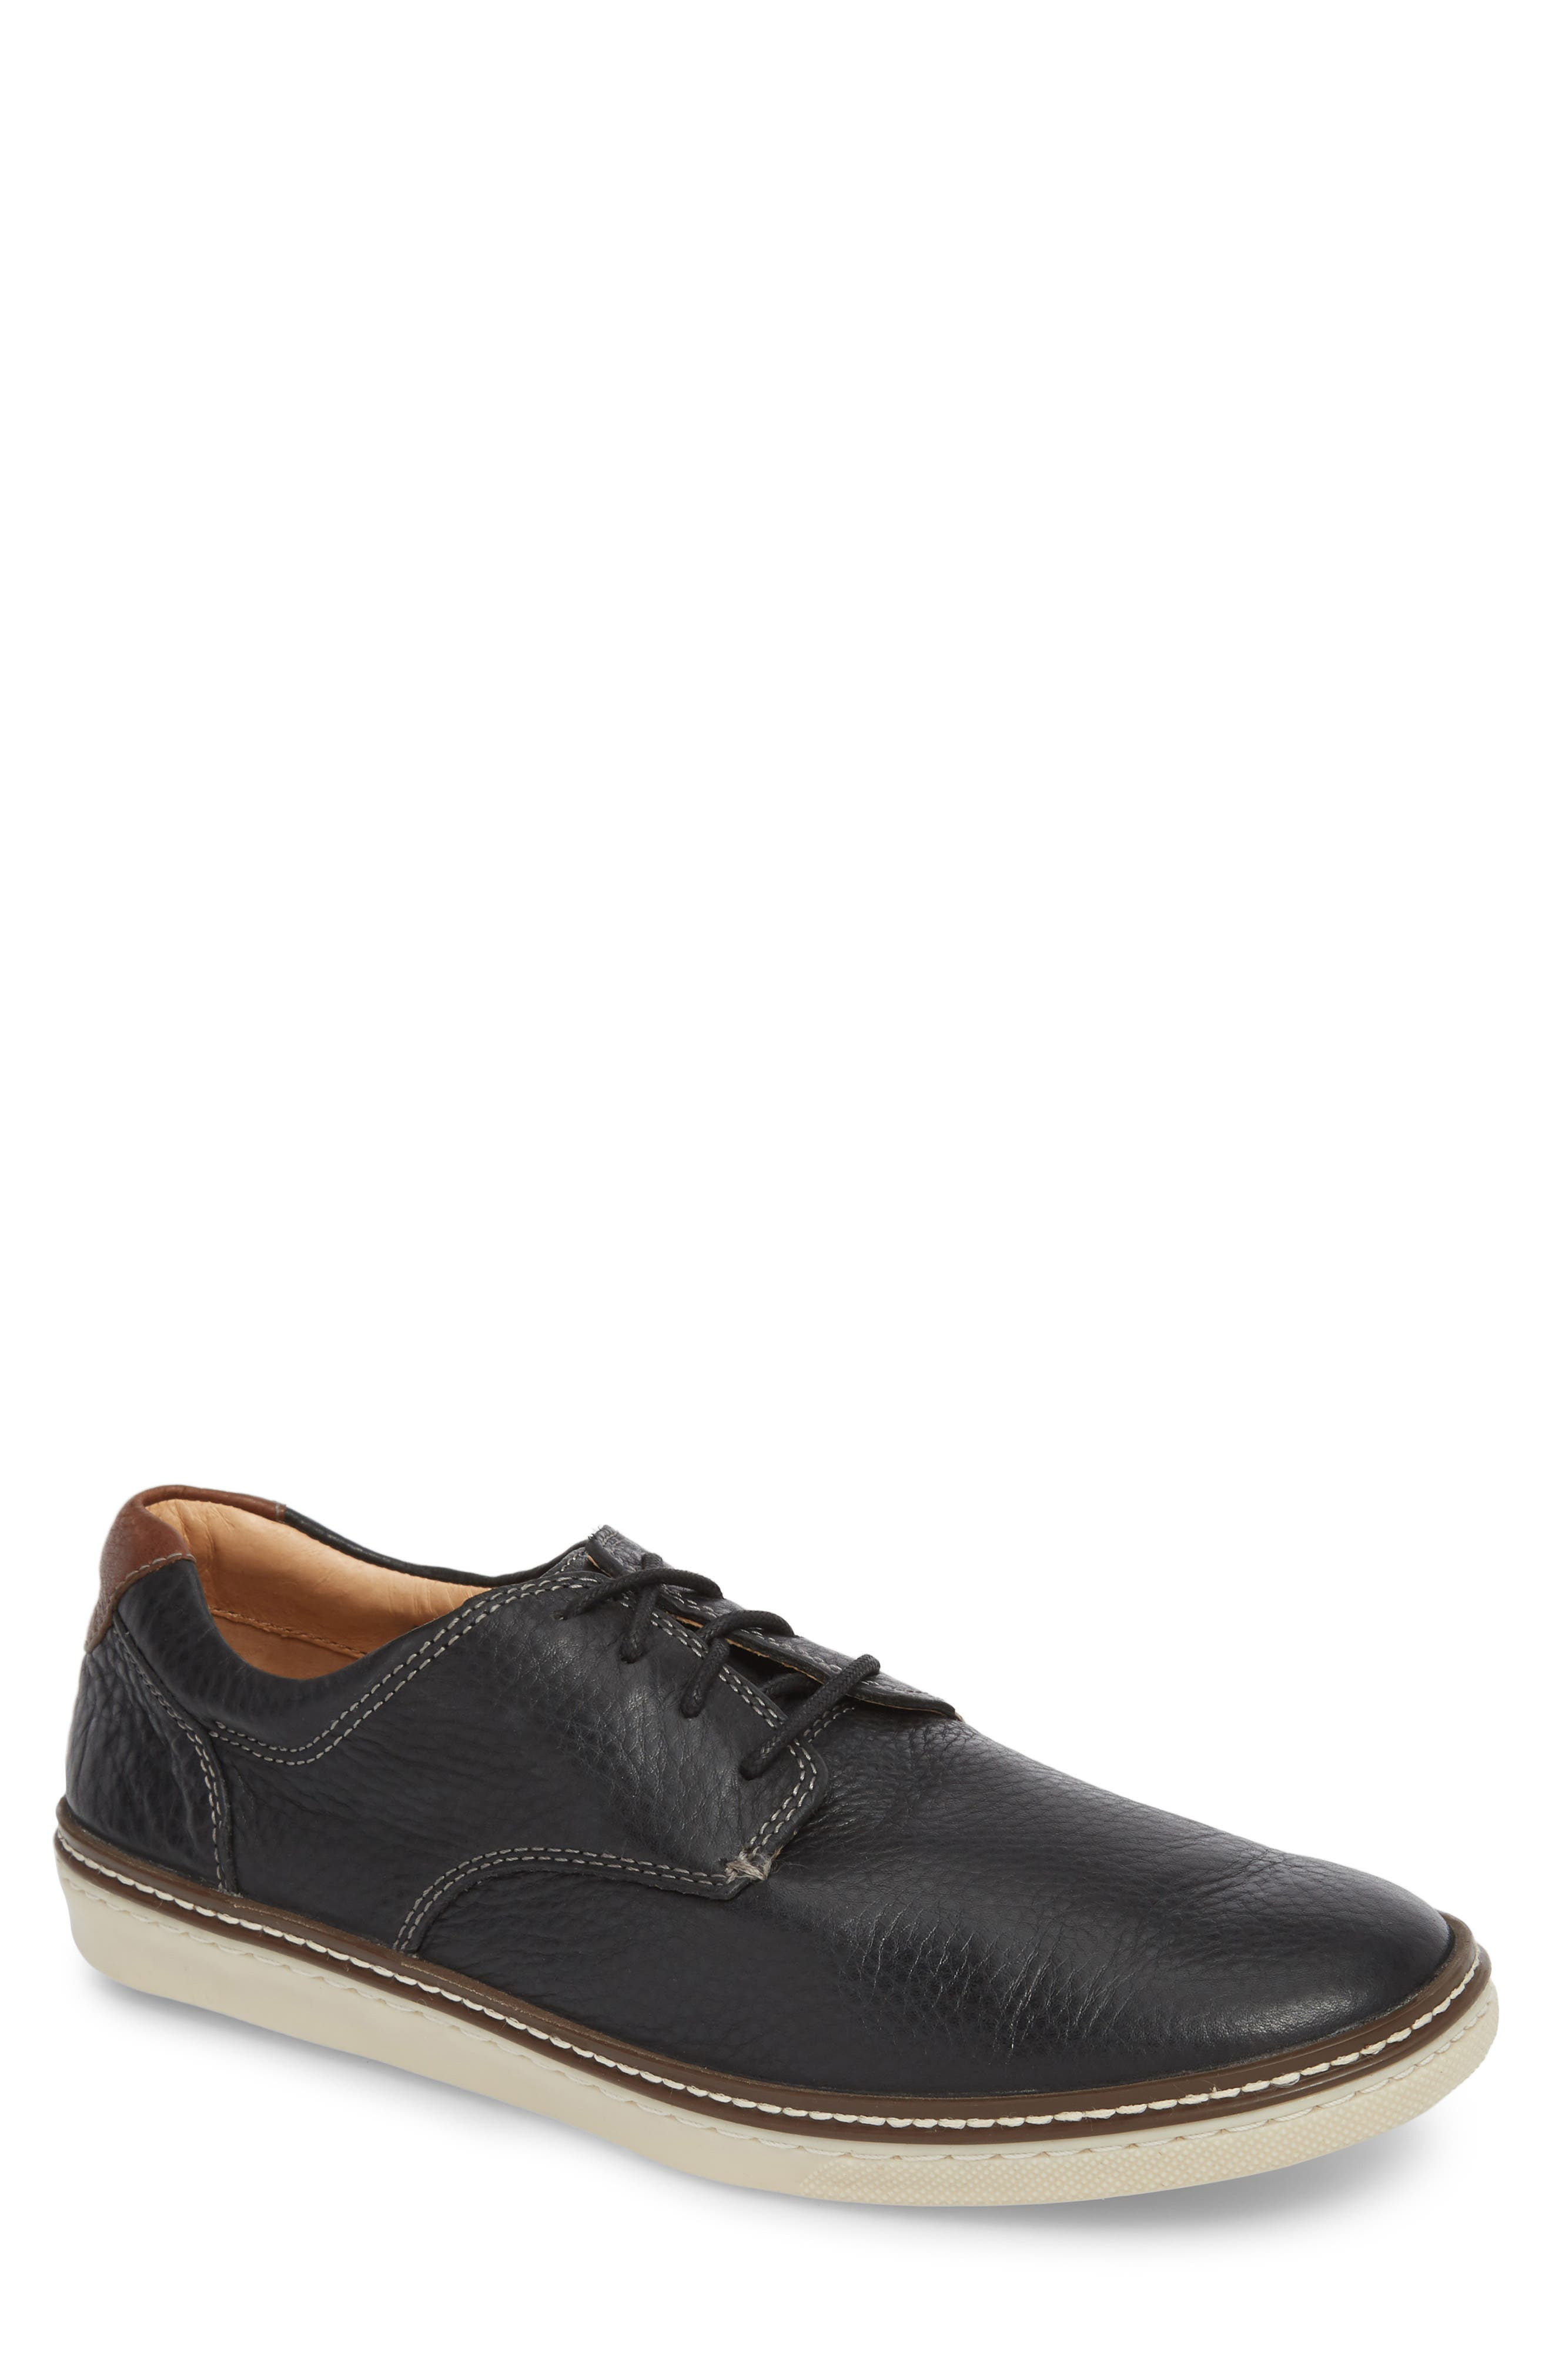 JOHNSTON & MURPHY, McGuffey Derby Sneaker, Main thumbnail 1, color, BLACK LEATHER